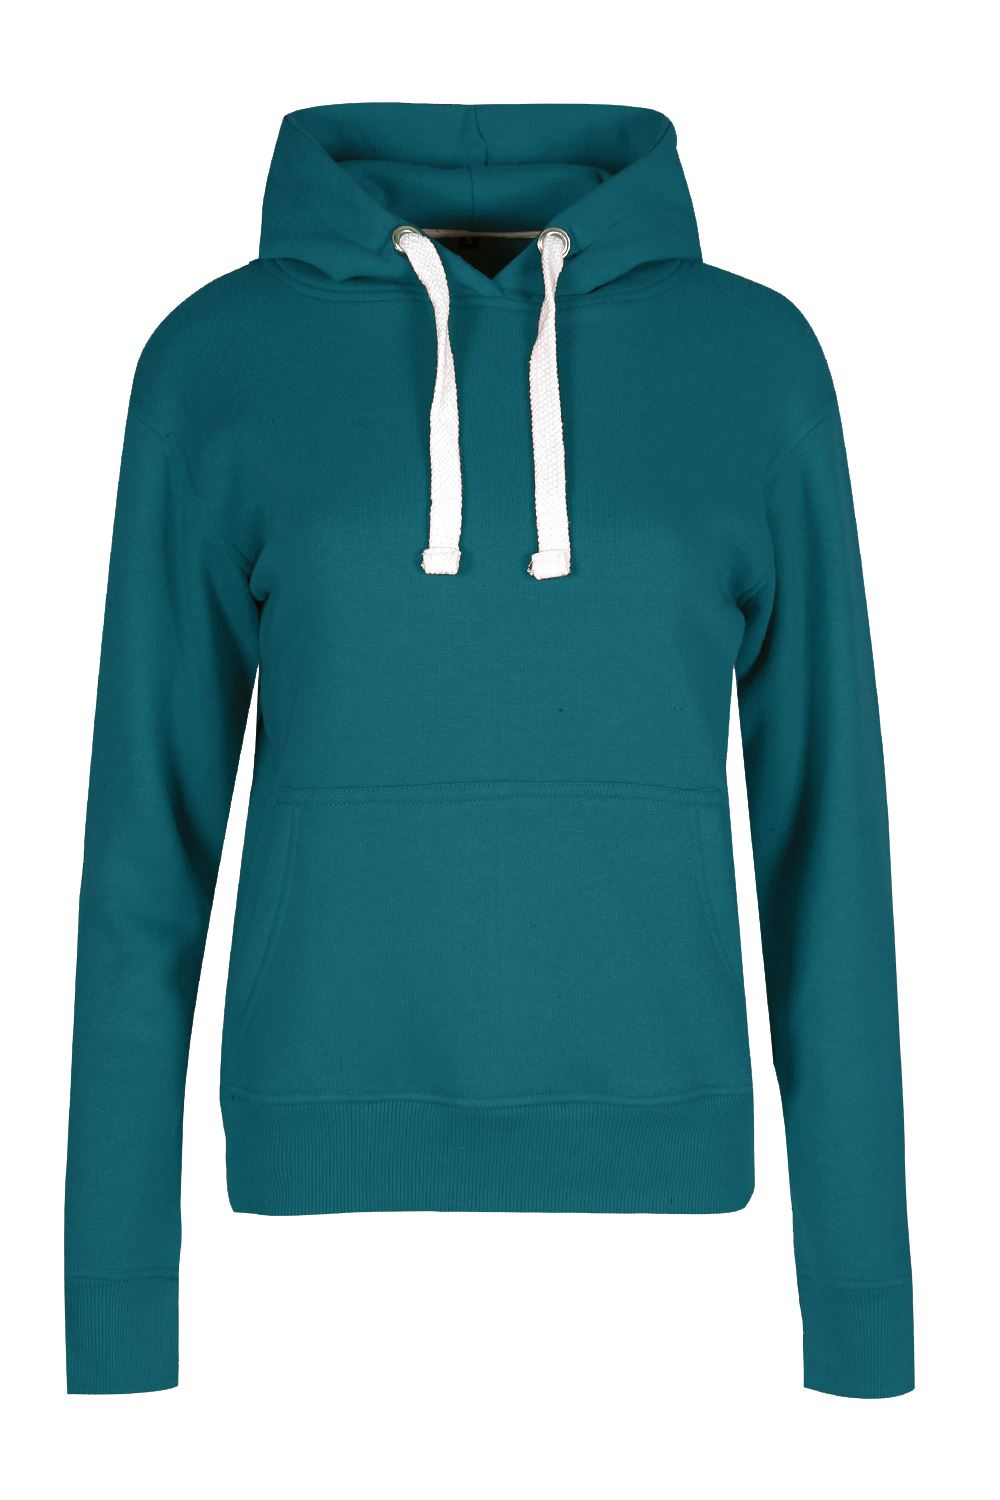 Hoodies For Women & Women's Sweatshirts: Get Cozy. Even if you love hot weather, you have to admit there are benefits to a slight chill in the air: excuses for baking something sweet, enjoying a hot drink, and cuddling up in cute hoodies and sportworlds.gq want what you wear to keep you warm and these women's hoodies do the job.